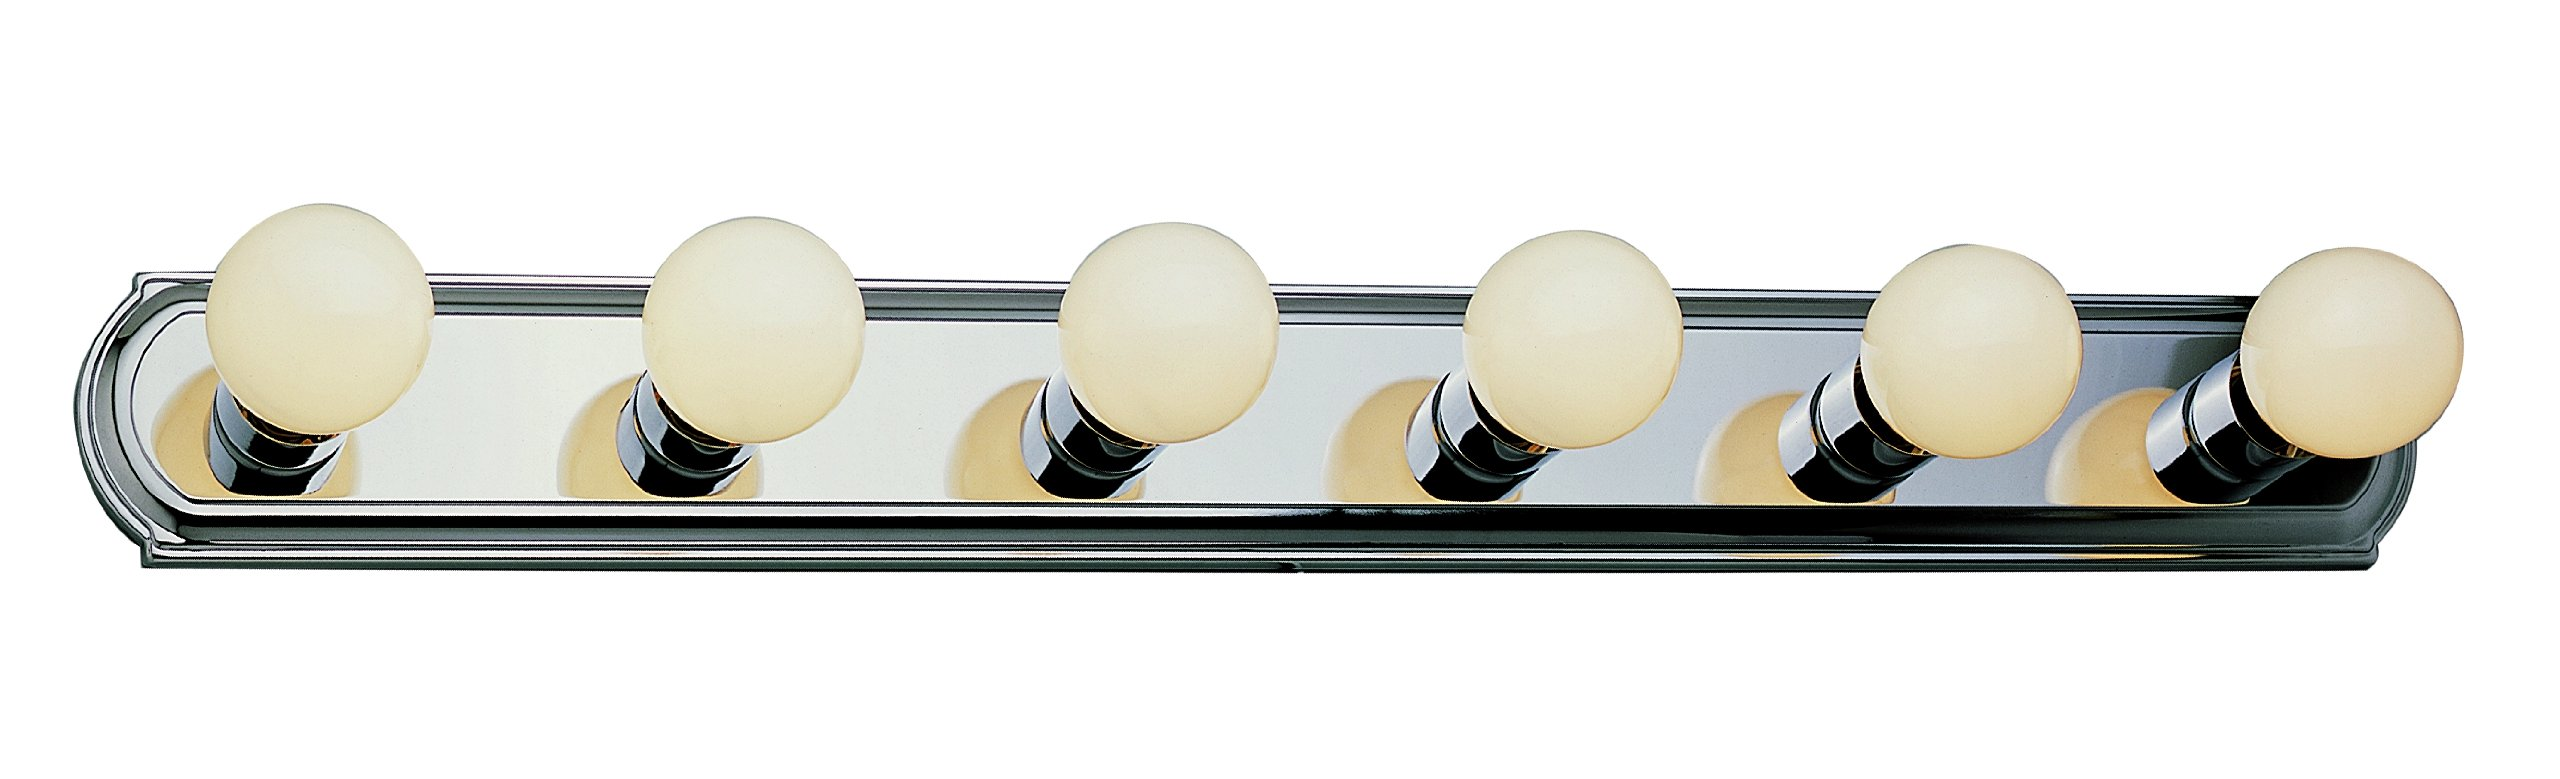 Trans Globe Lighting 3236 ROB 6-Light Basic Strip Bathroom Bar Light, Rubbed Oil Bronze - Easy installation Uses medium base bulbs Hollywood racetrack light - bathroom-lights, bathroom-fixtures-hardware, bathroom - 71SUGT46tQL -